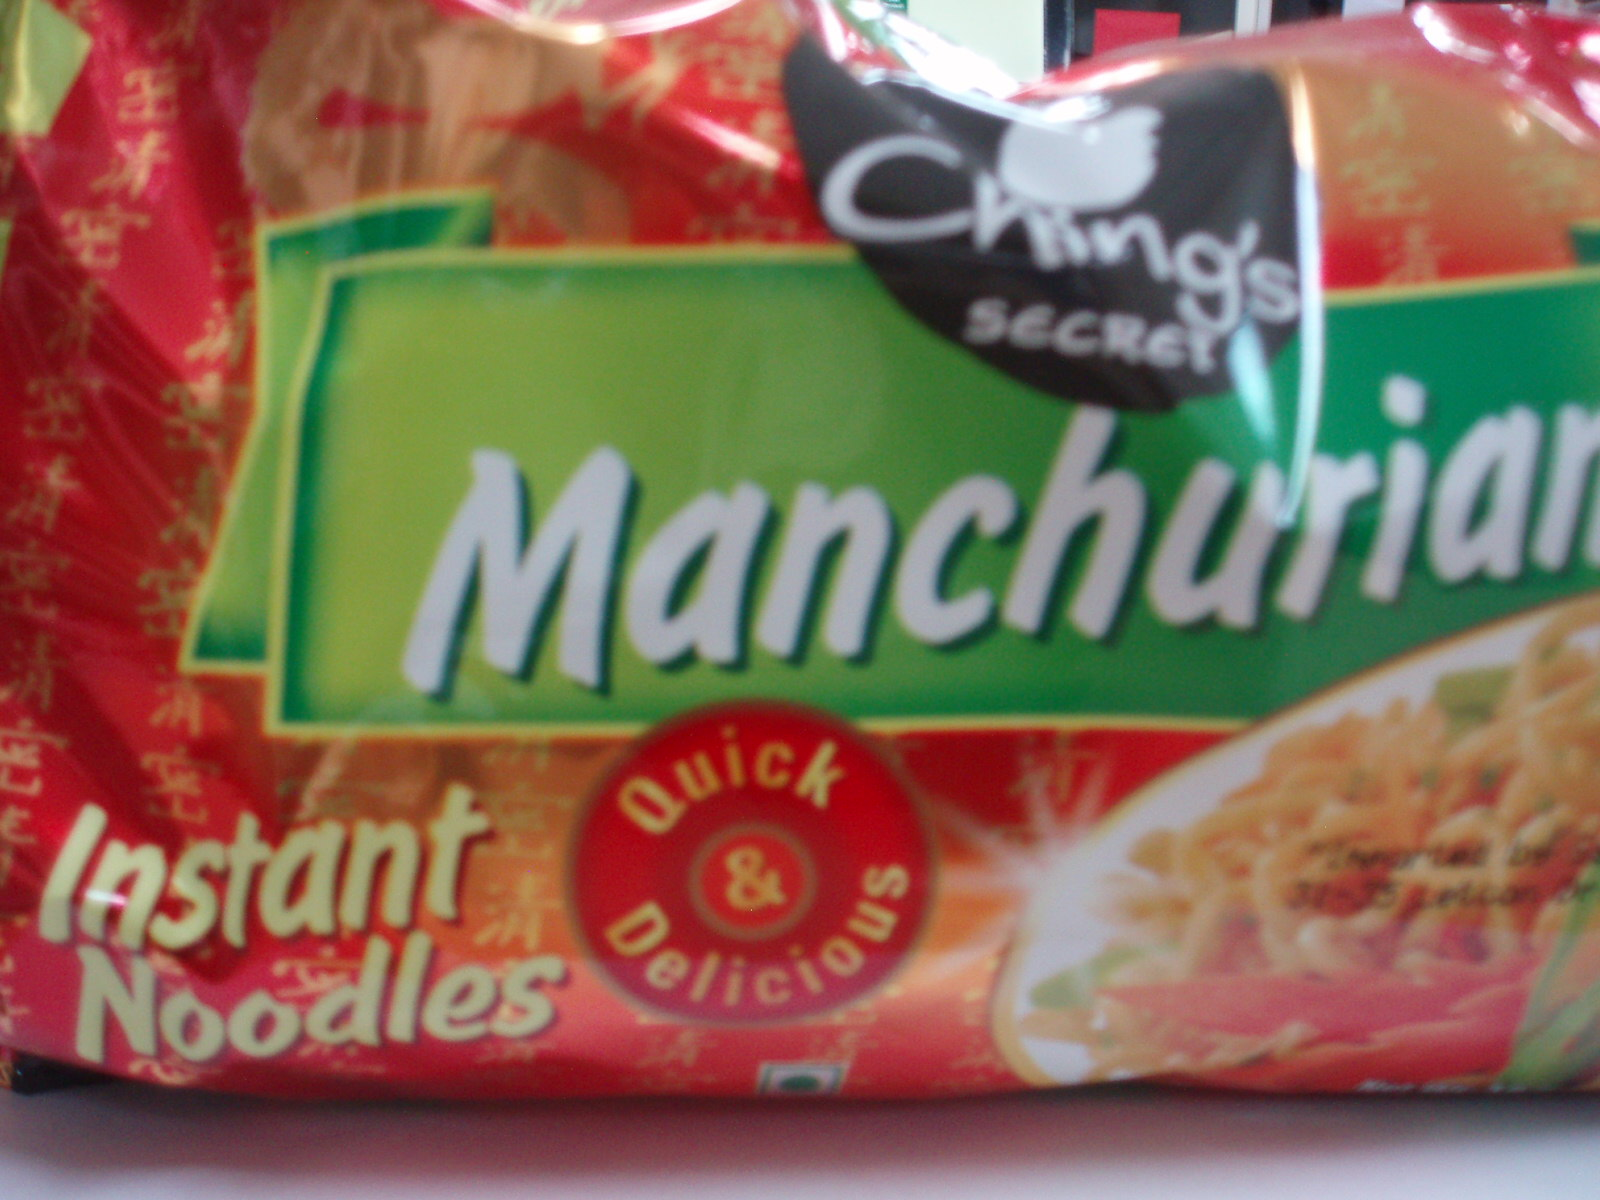 Manchurian Noodles-Ching'S Secret-300 gm